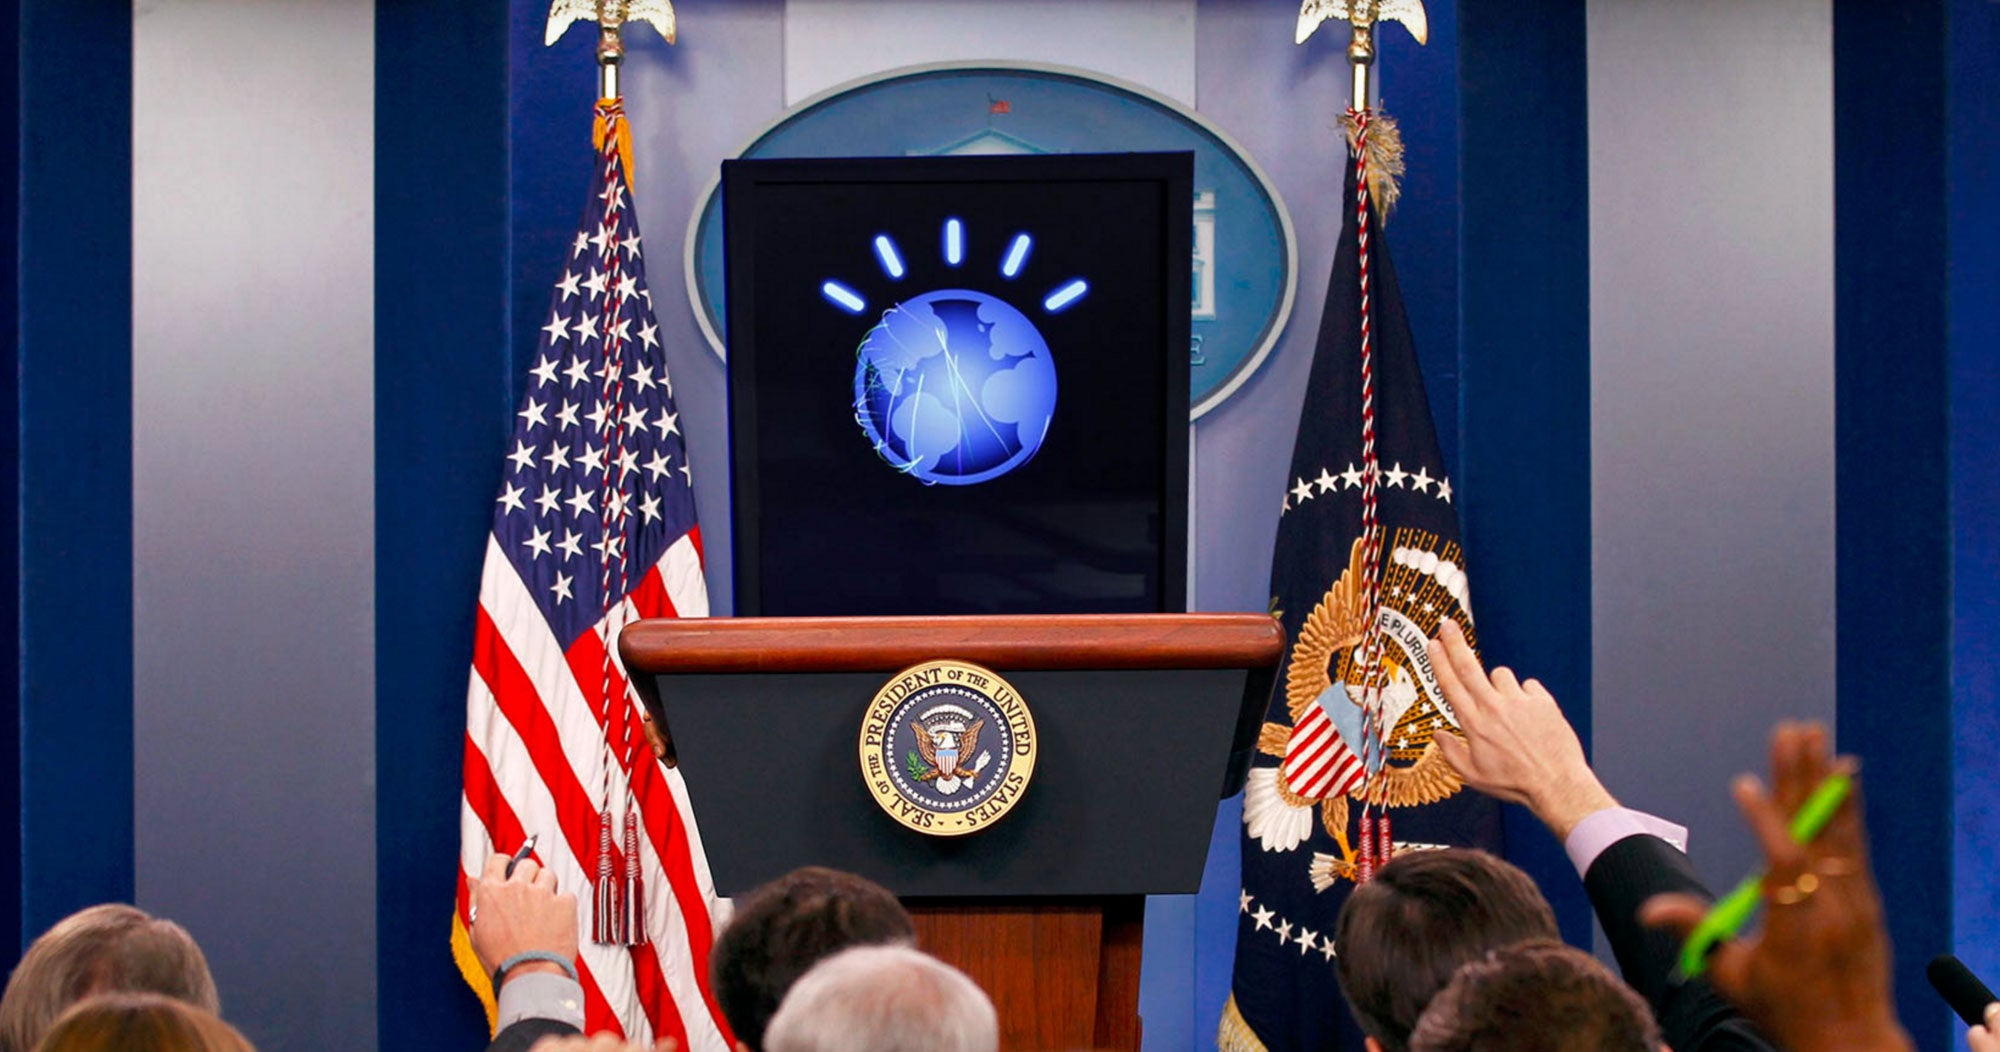 The White House Has Realized Artificial Intelligence Is Very Important